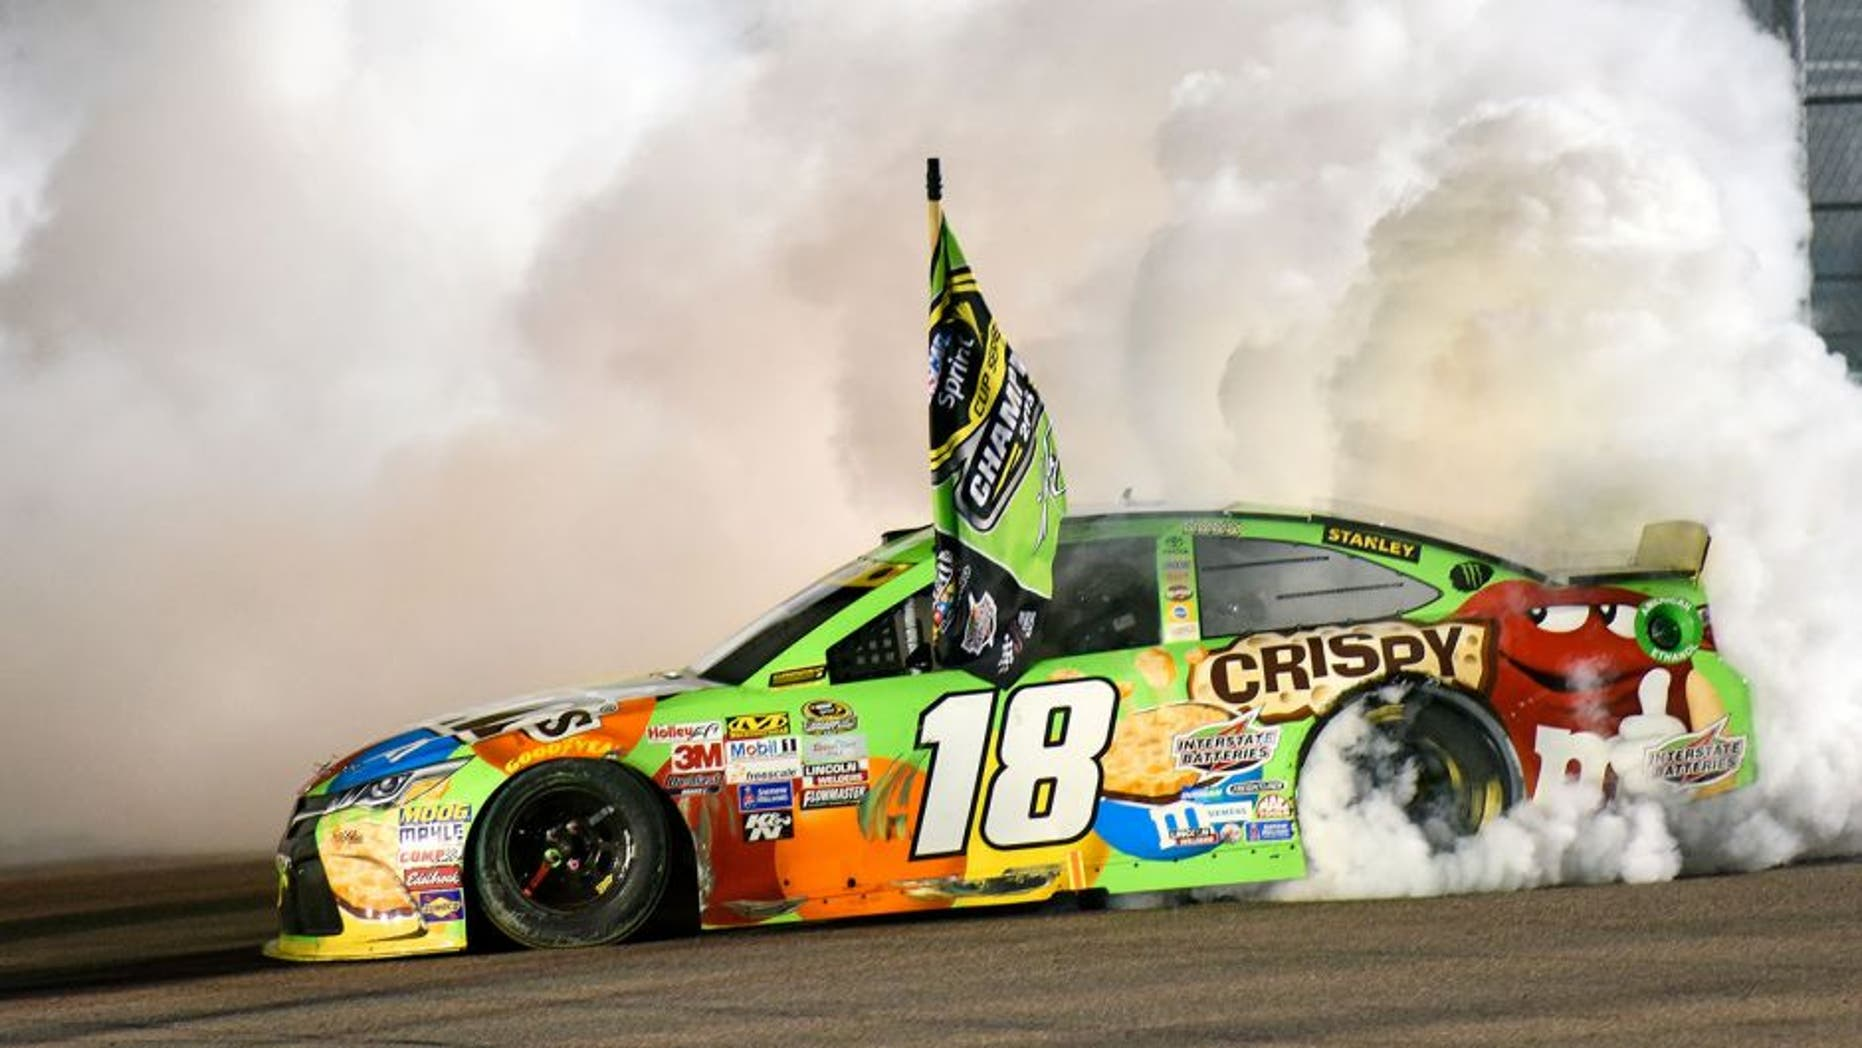 HOMESTEAD, FL - NOVEMBER 22: Kyle Busch, driver of the #18 M&M's Crispy Toyota, celebrates winning the series championship and the race with a burnout after the NASCAR Sprint Cup Series Ford EcoBoost 400 at Homestead-Miami Speedway on November 22, 2015 in Homestead, Florida. (Photo by Jared C. Tilton/NASCAR via Getty Images)